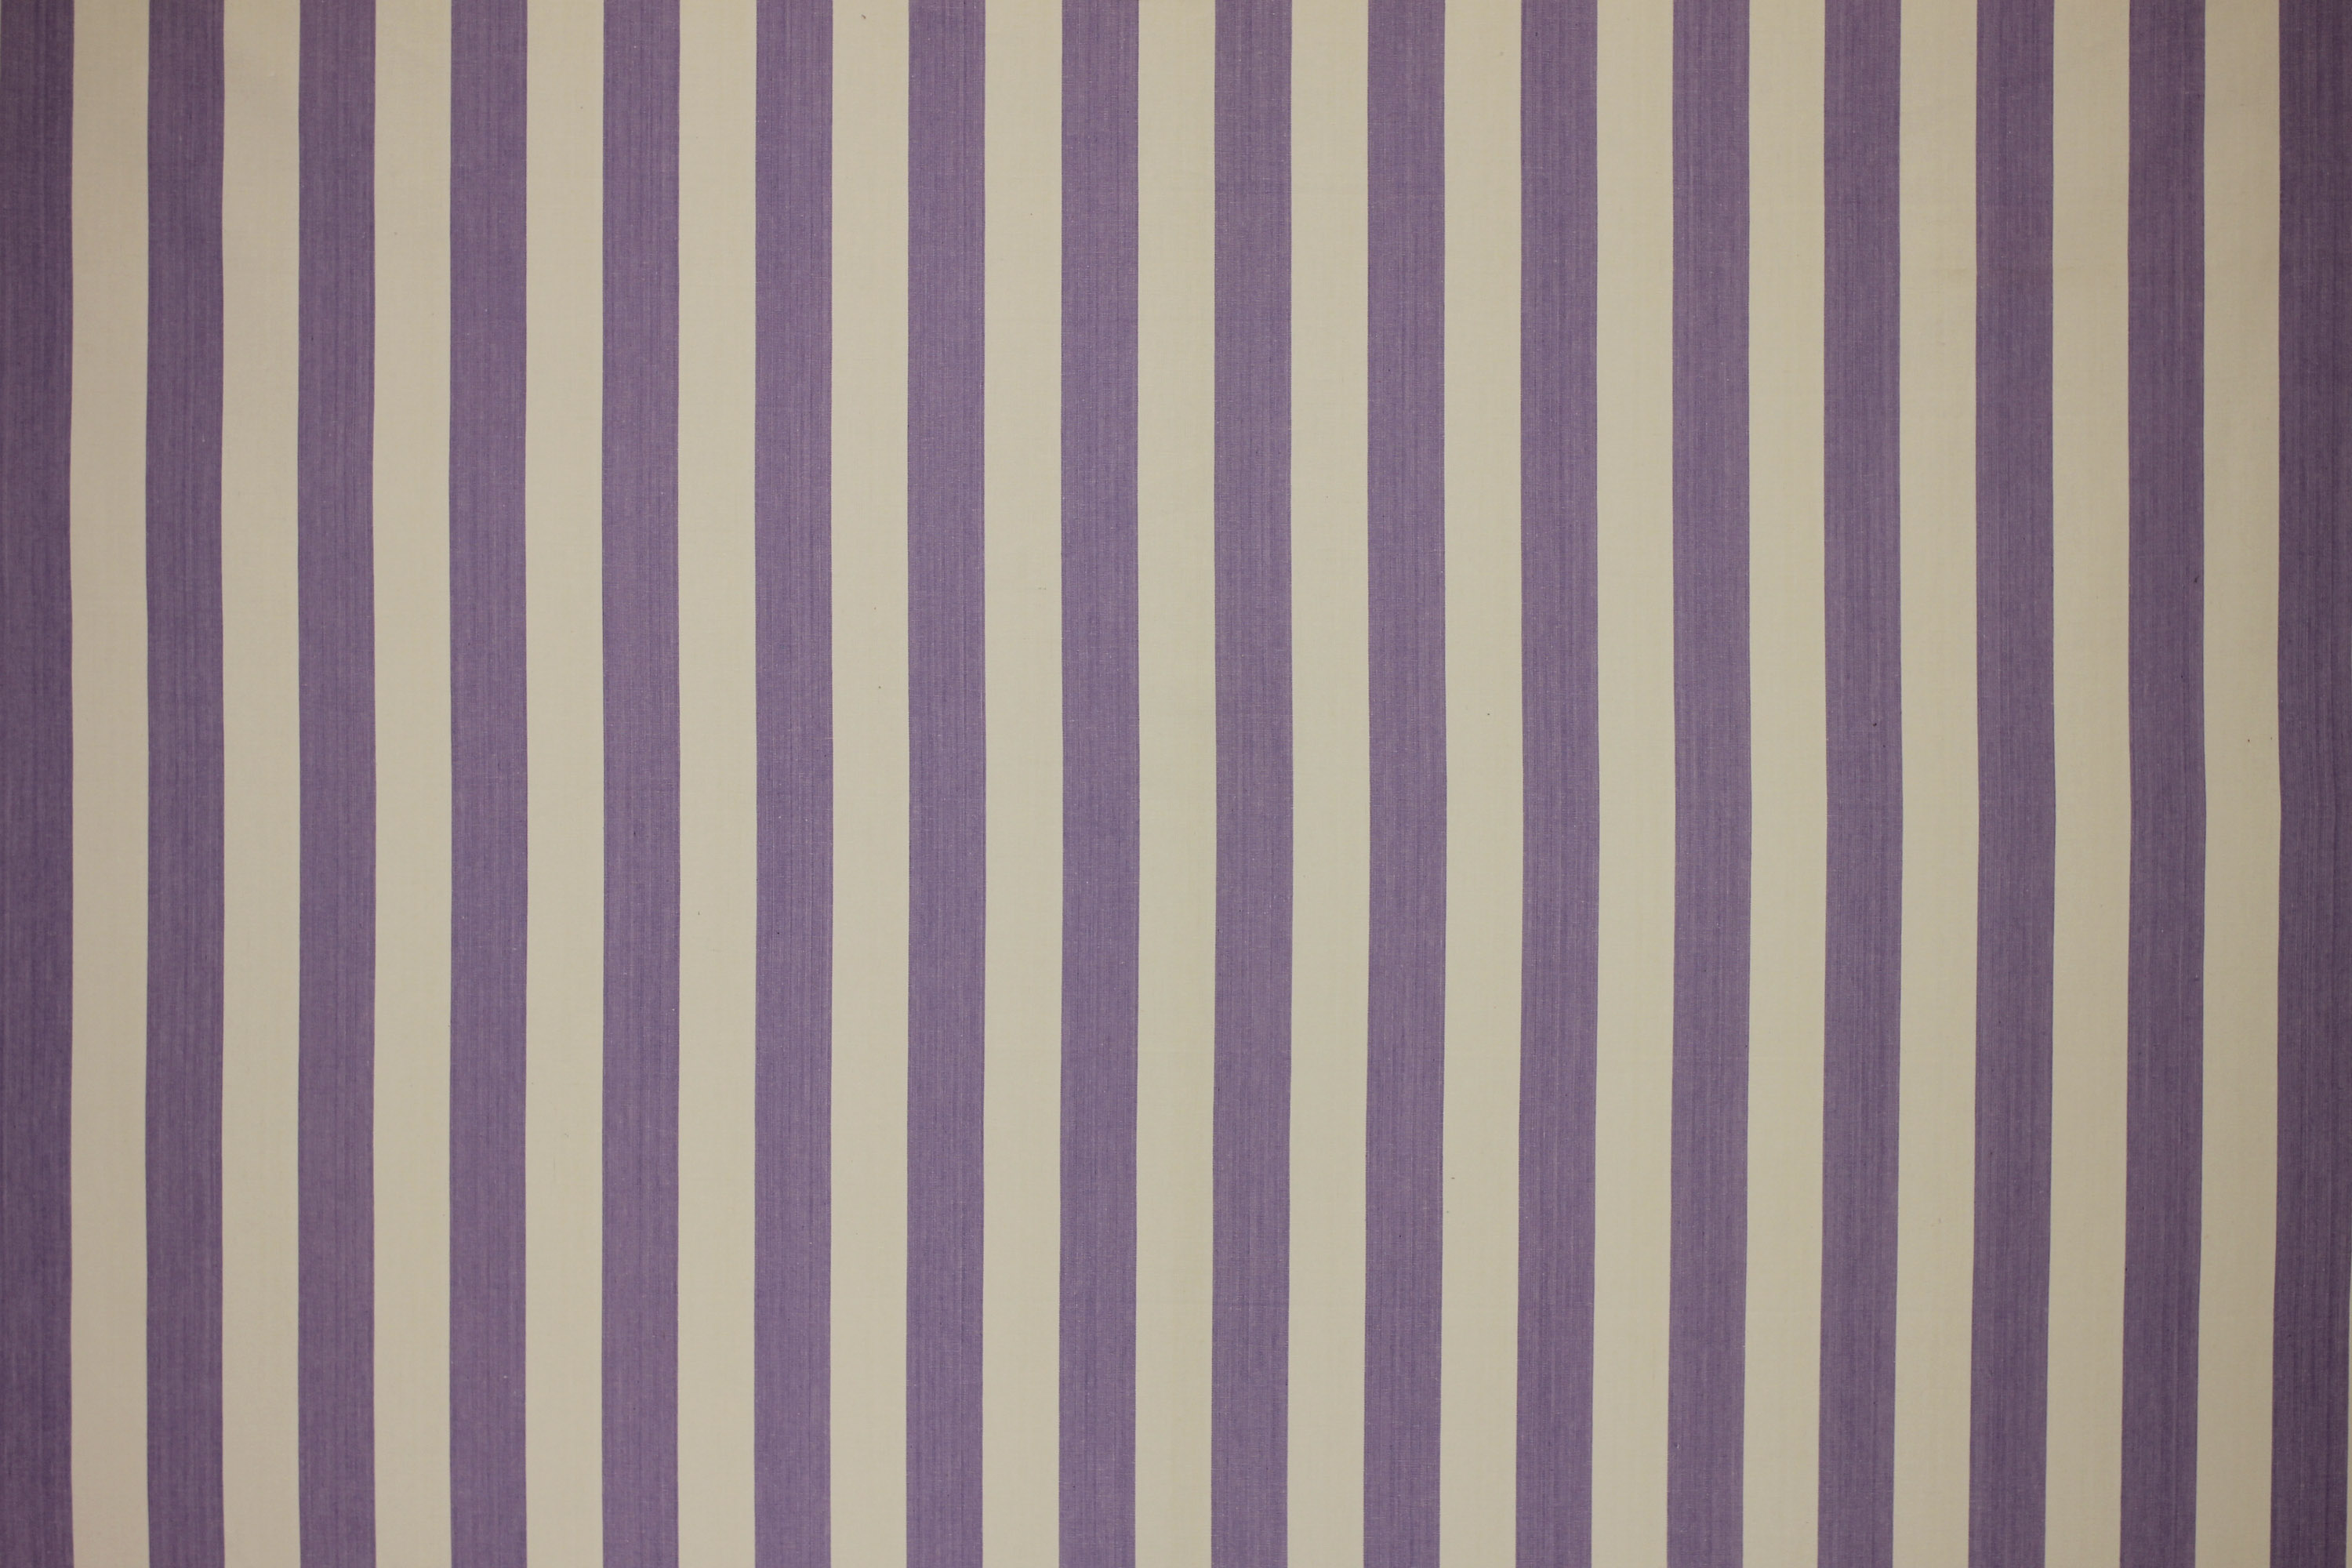 Lilac Striped Fabrics | Stripe Cotton Fabrics | Striped Curtain Fabrics | Upholstery Fabrics  Eventing Stripes